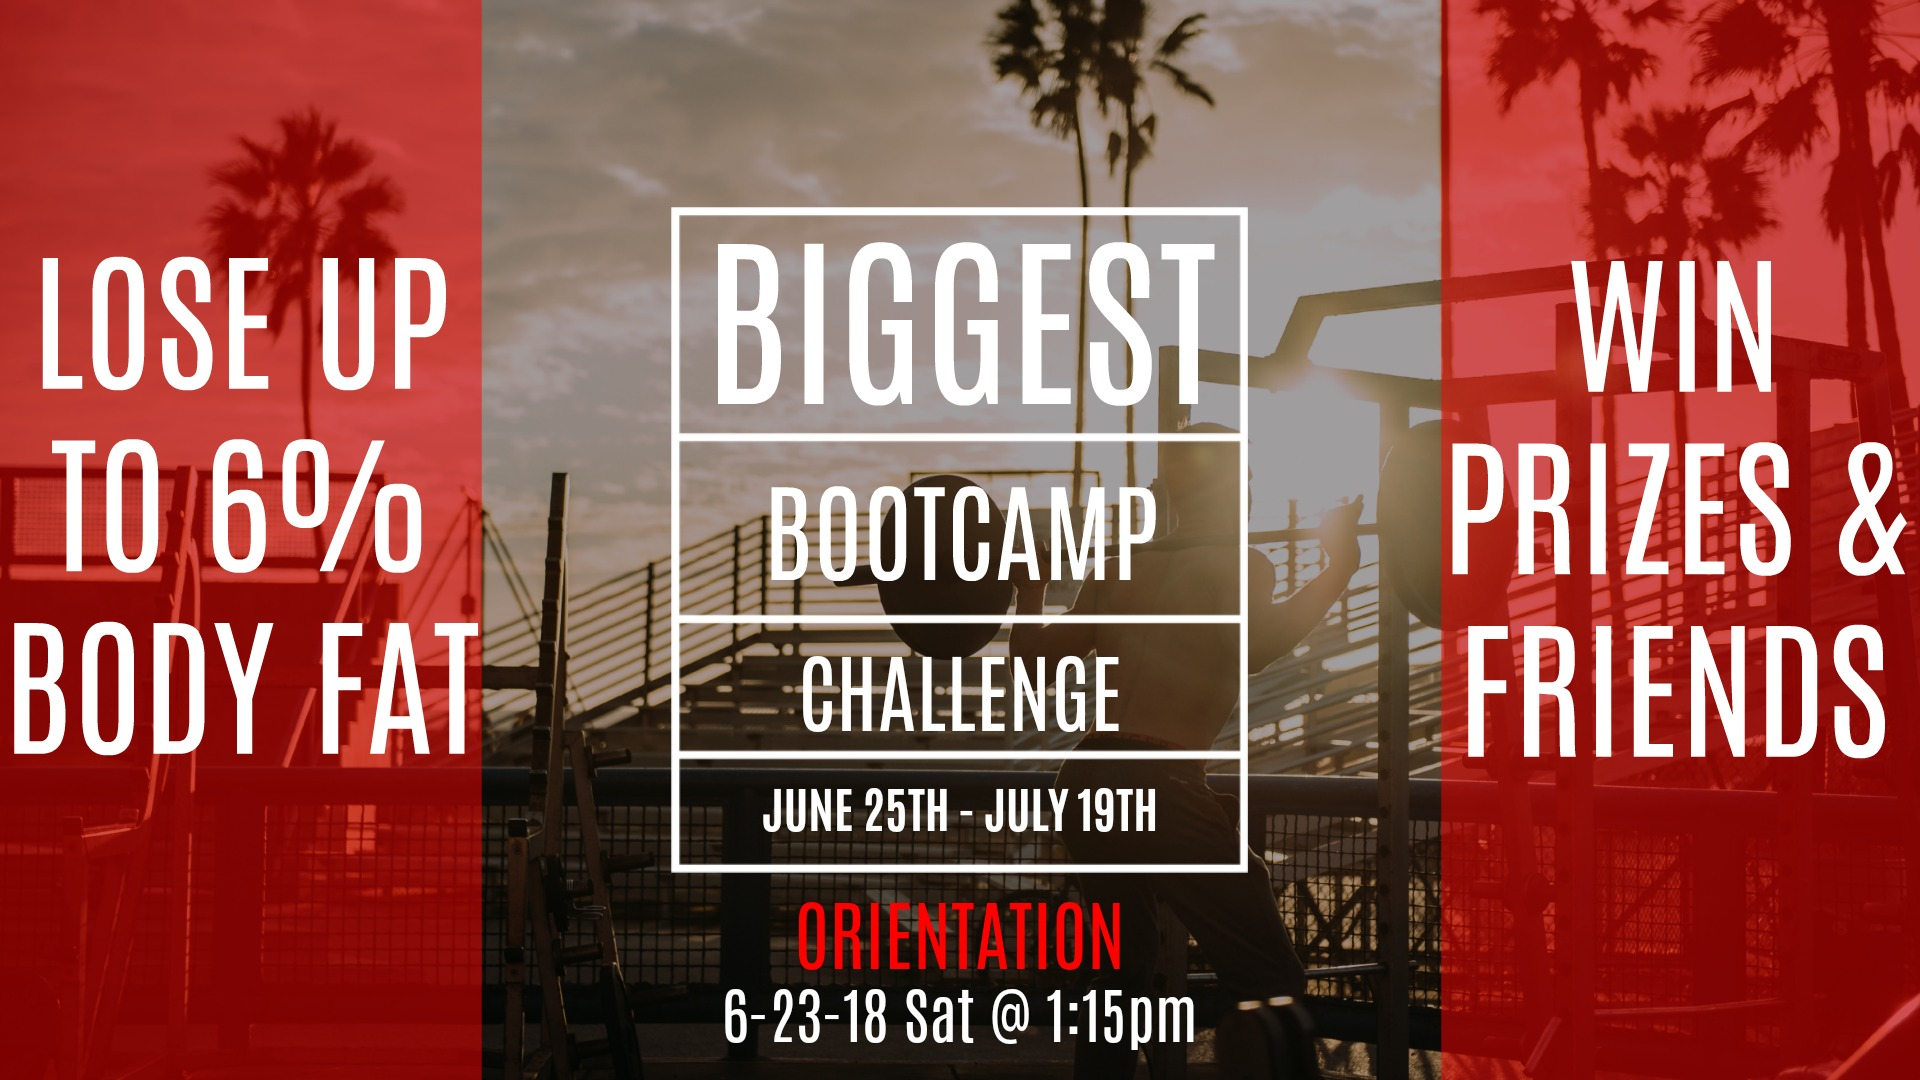 Biggest Boot Camp Challenge